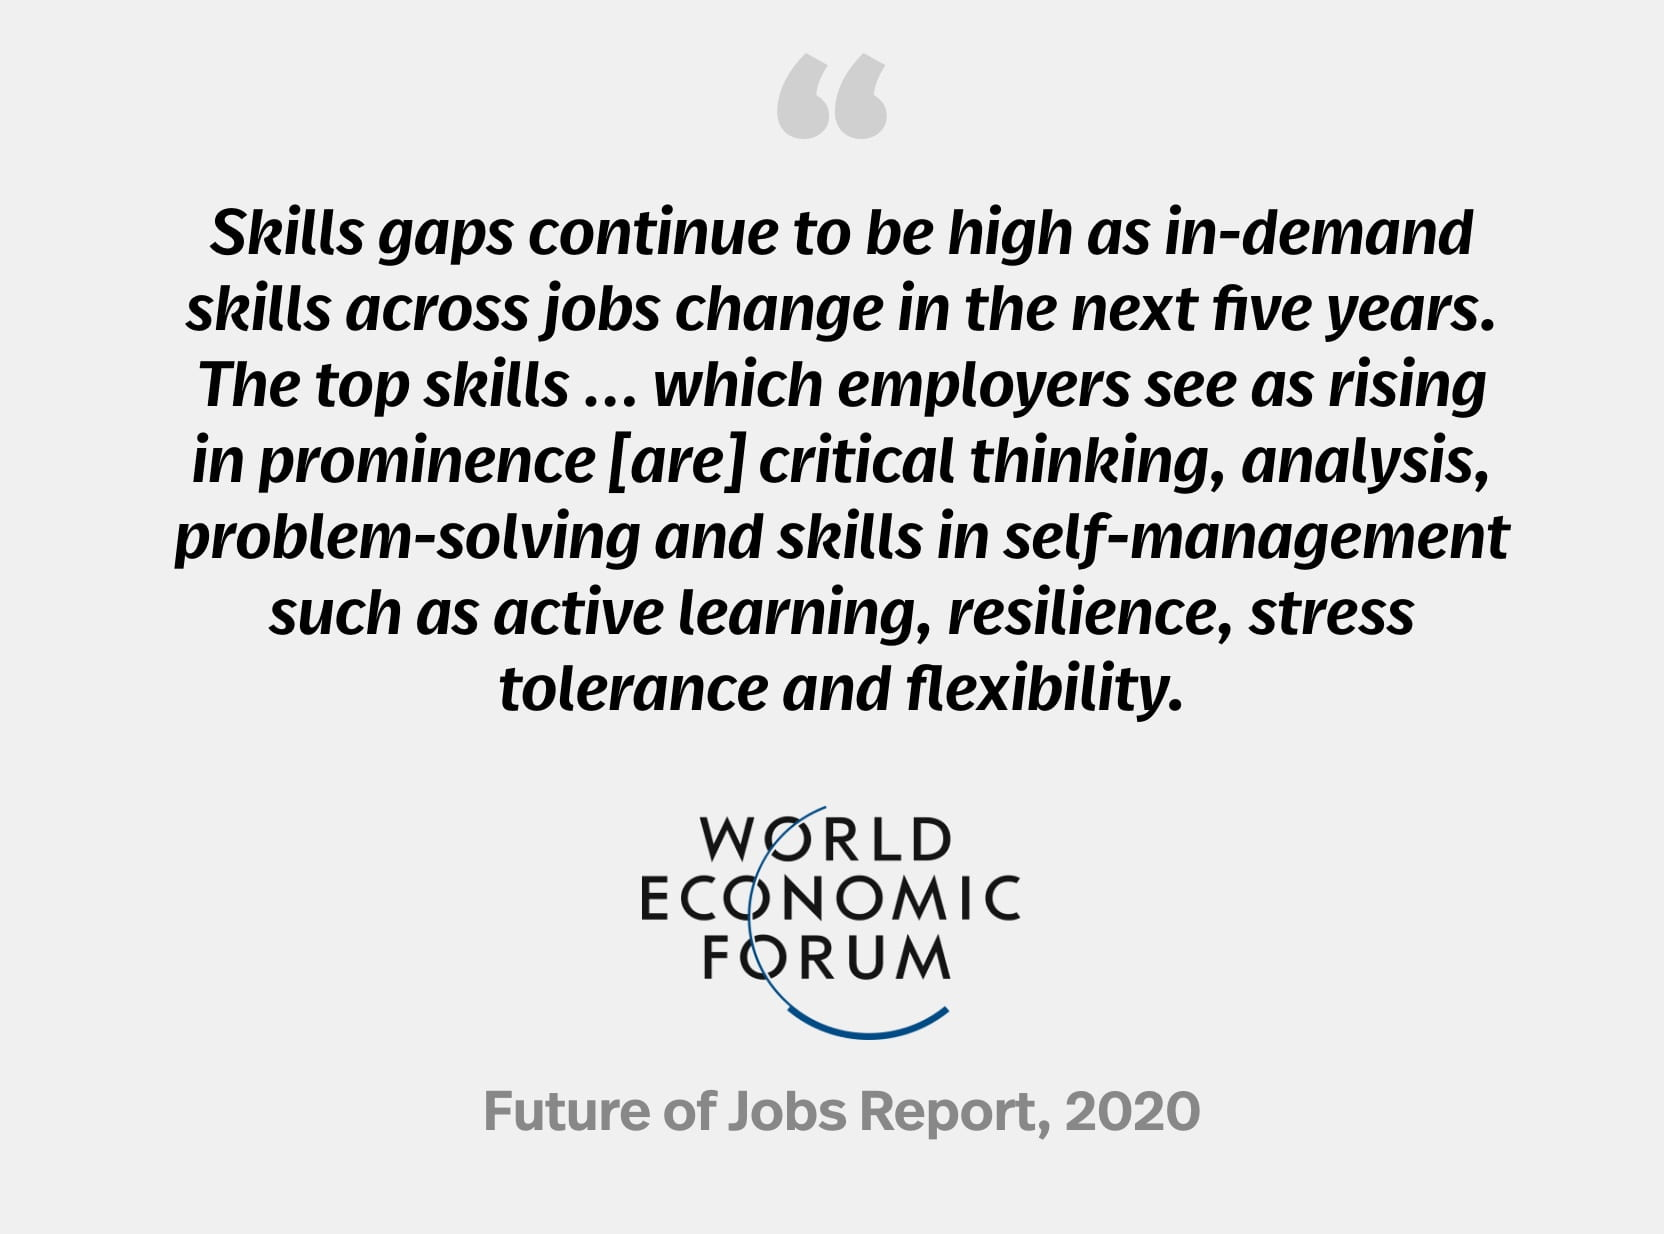 """""""Skills gaps continue to be high as in-demand skills across jobs change in the next five years. The top skills ... which employers see as rising in prominence [are] critical thinking, analysis, problem-solving and skills in self-management such as active learning, resilience, stress tolerance and flexibility."""" World Economic Forum, Future of Jobs Report 2020"""